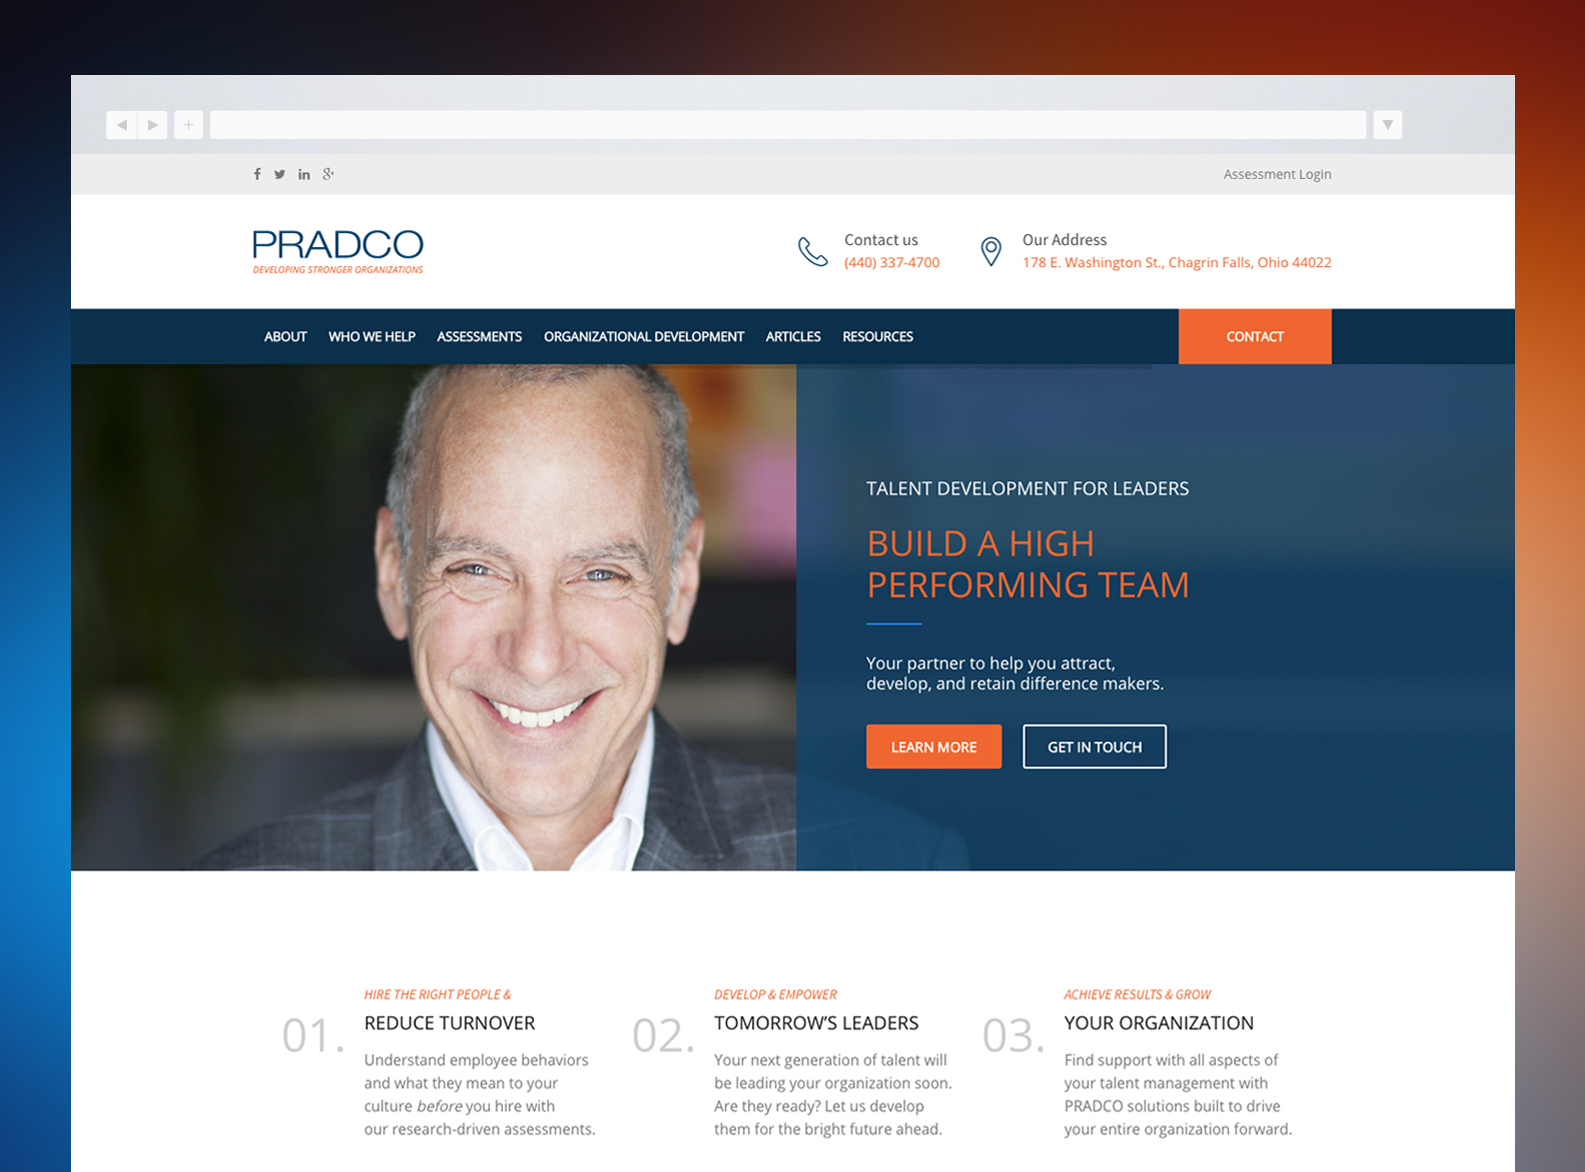 PRADCO Website